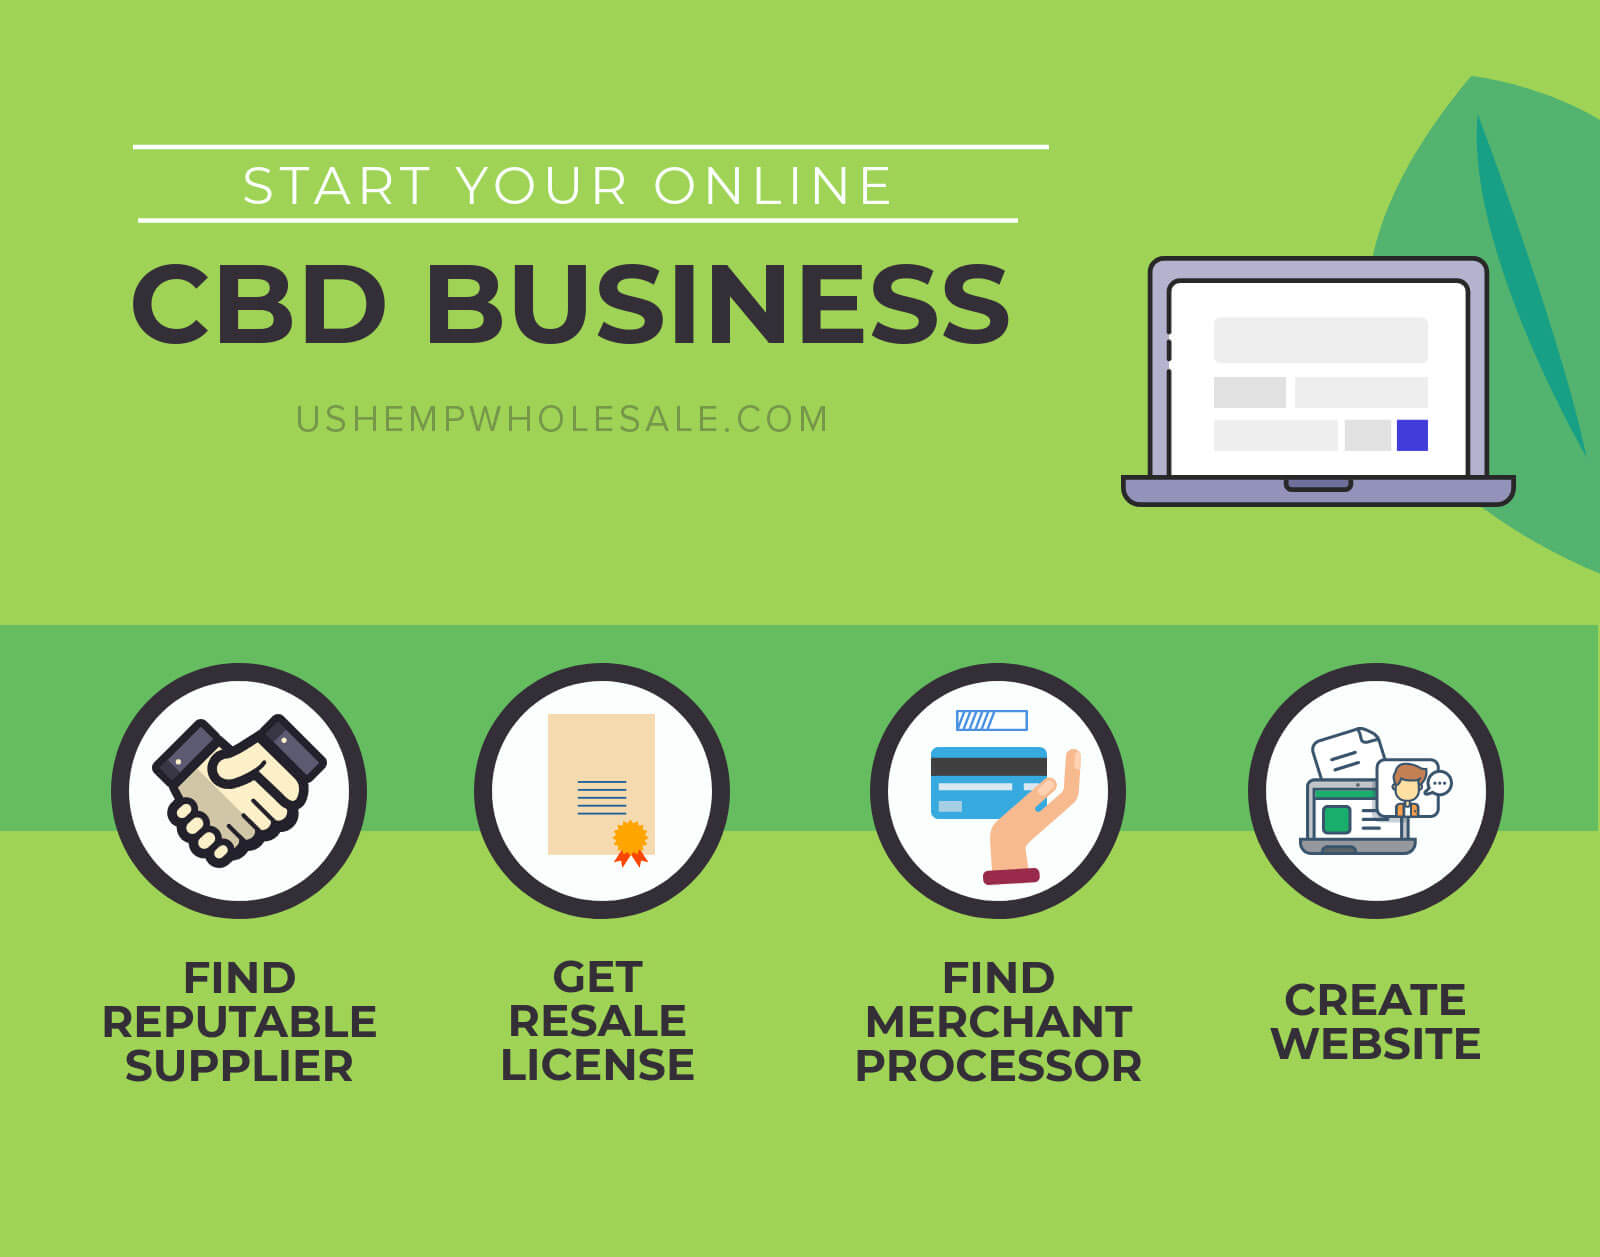 Wholesale for Your CBD Business